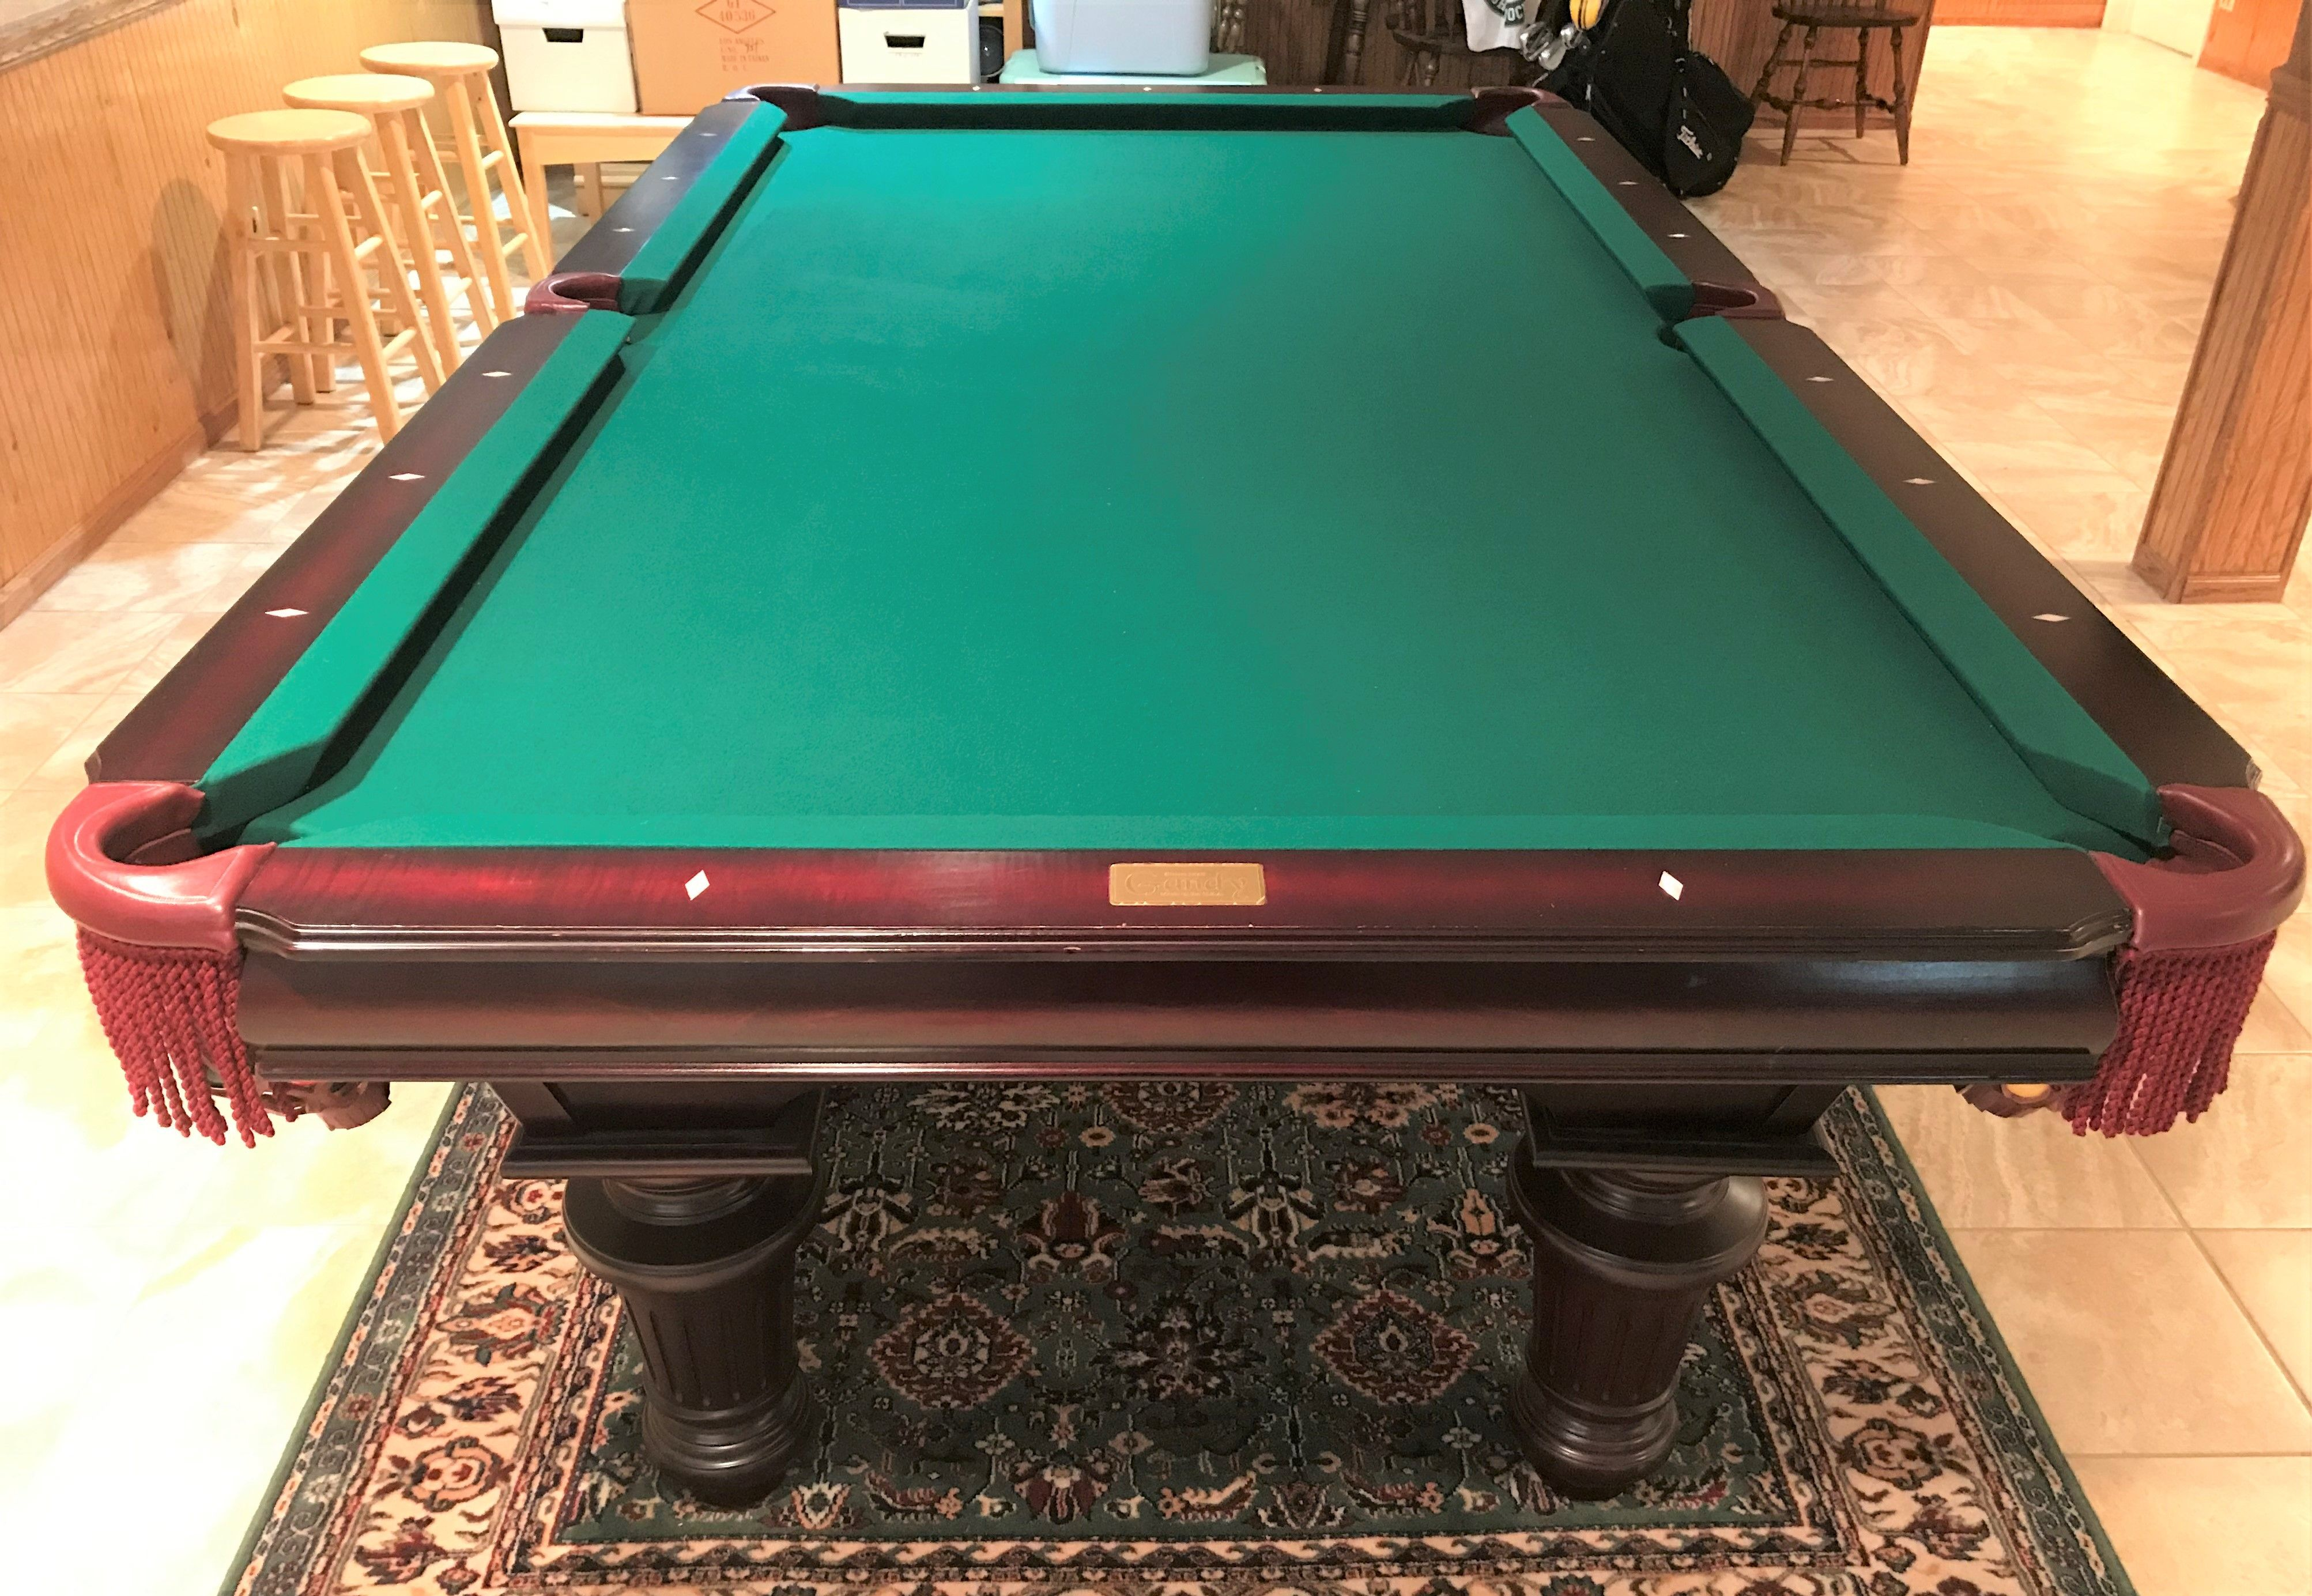 Pin On Used Pool Tables For Sale Prices Vary By Your Location Floor Level Call D Jaburek 708 785 1433